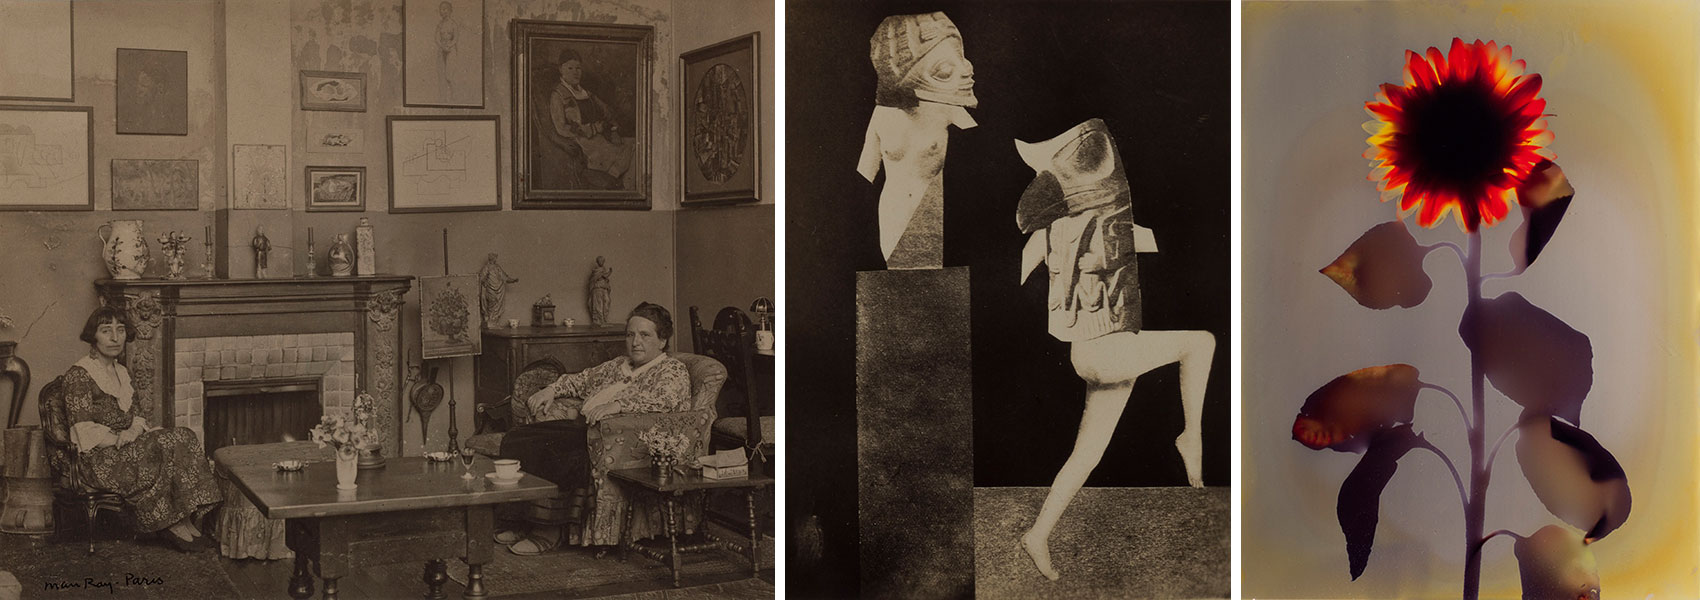 Works by Man Ray, Hannah Höch, and Adam Fuss